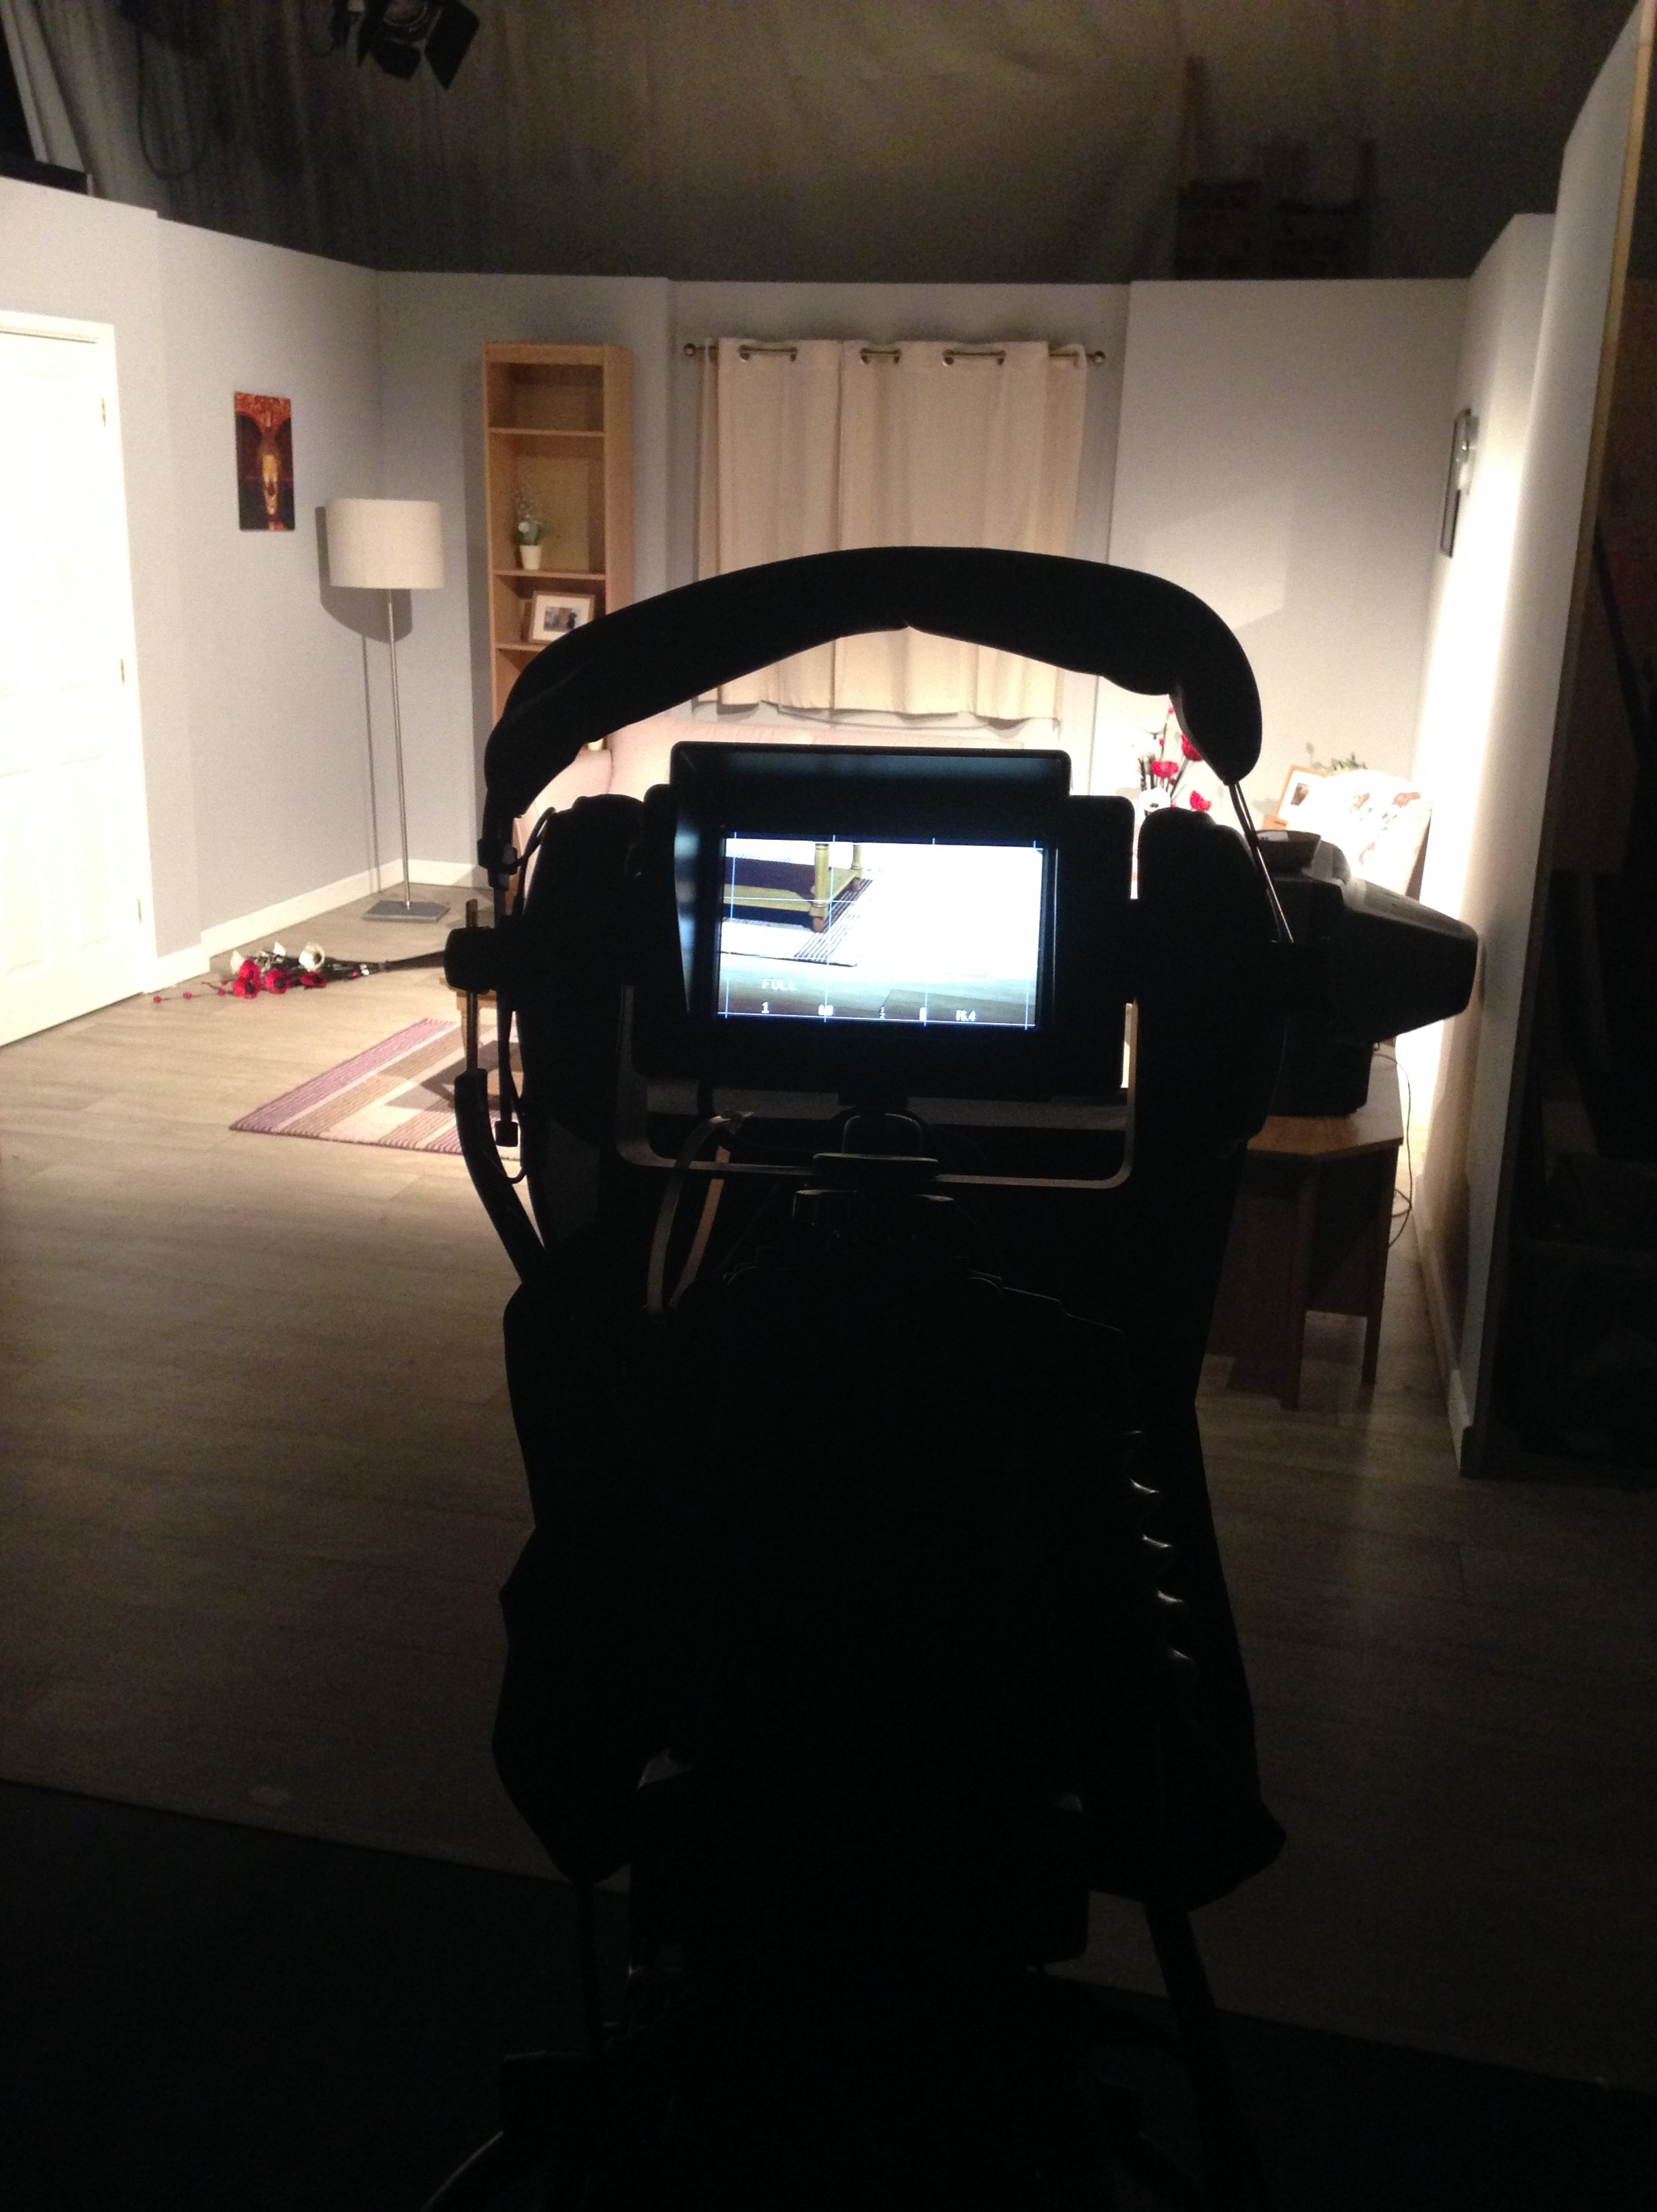 filming from behind camera